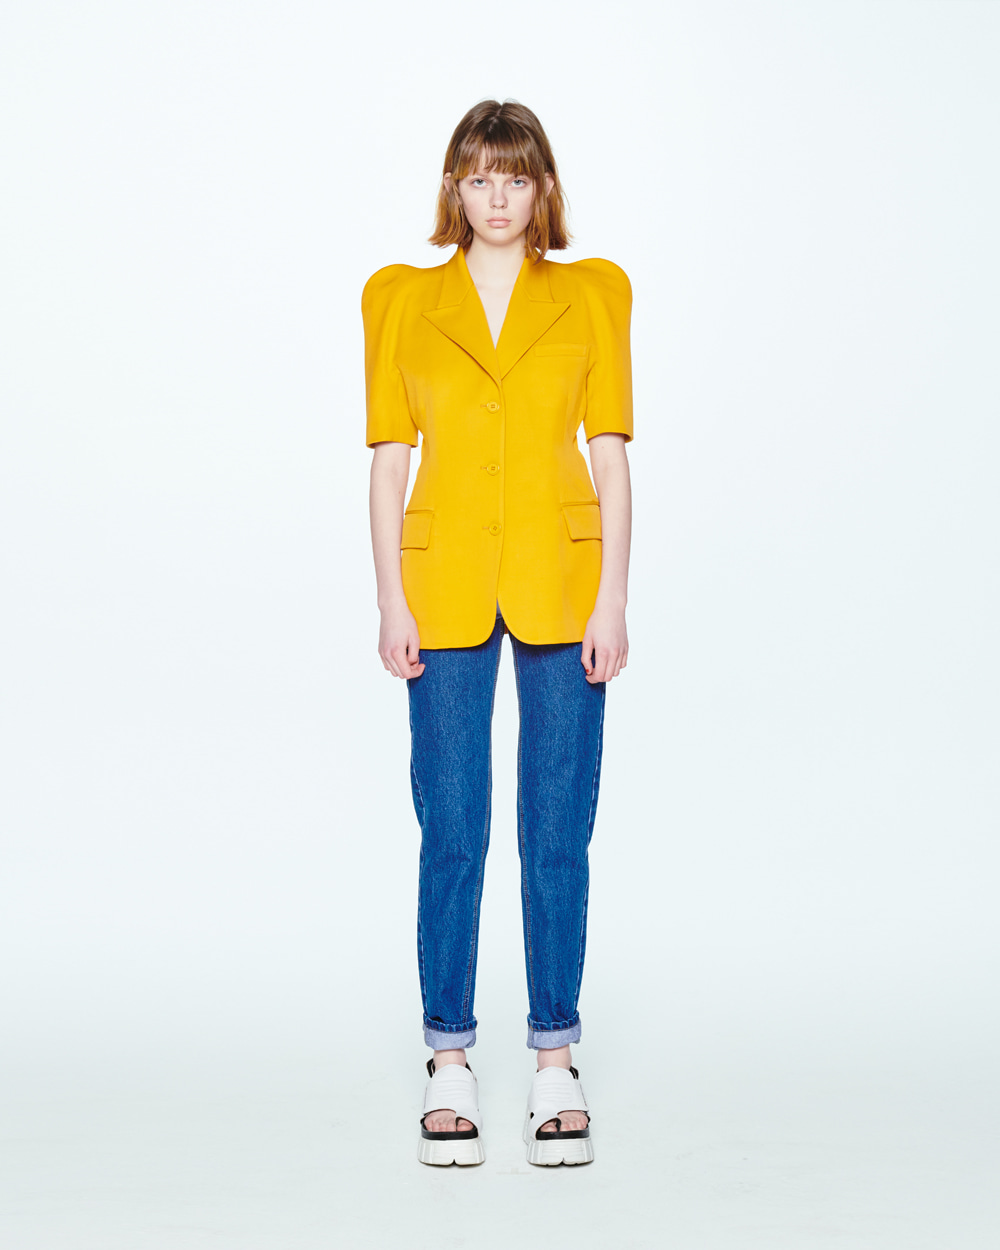 SS20 SHORT SLEEVED YELLOW JACKET